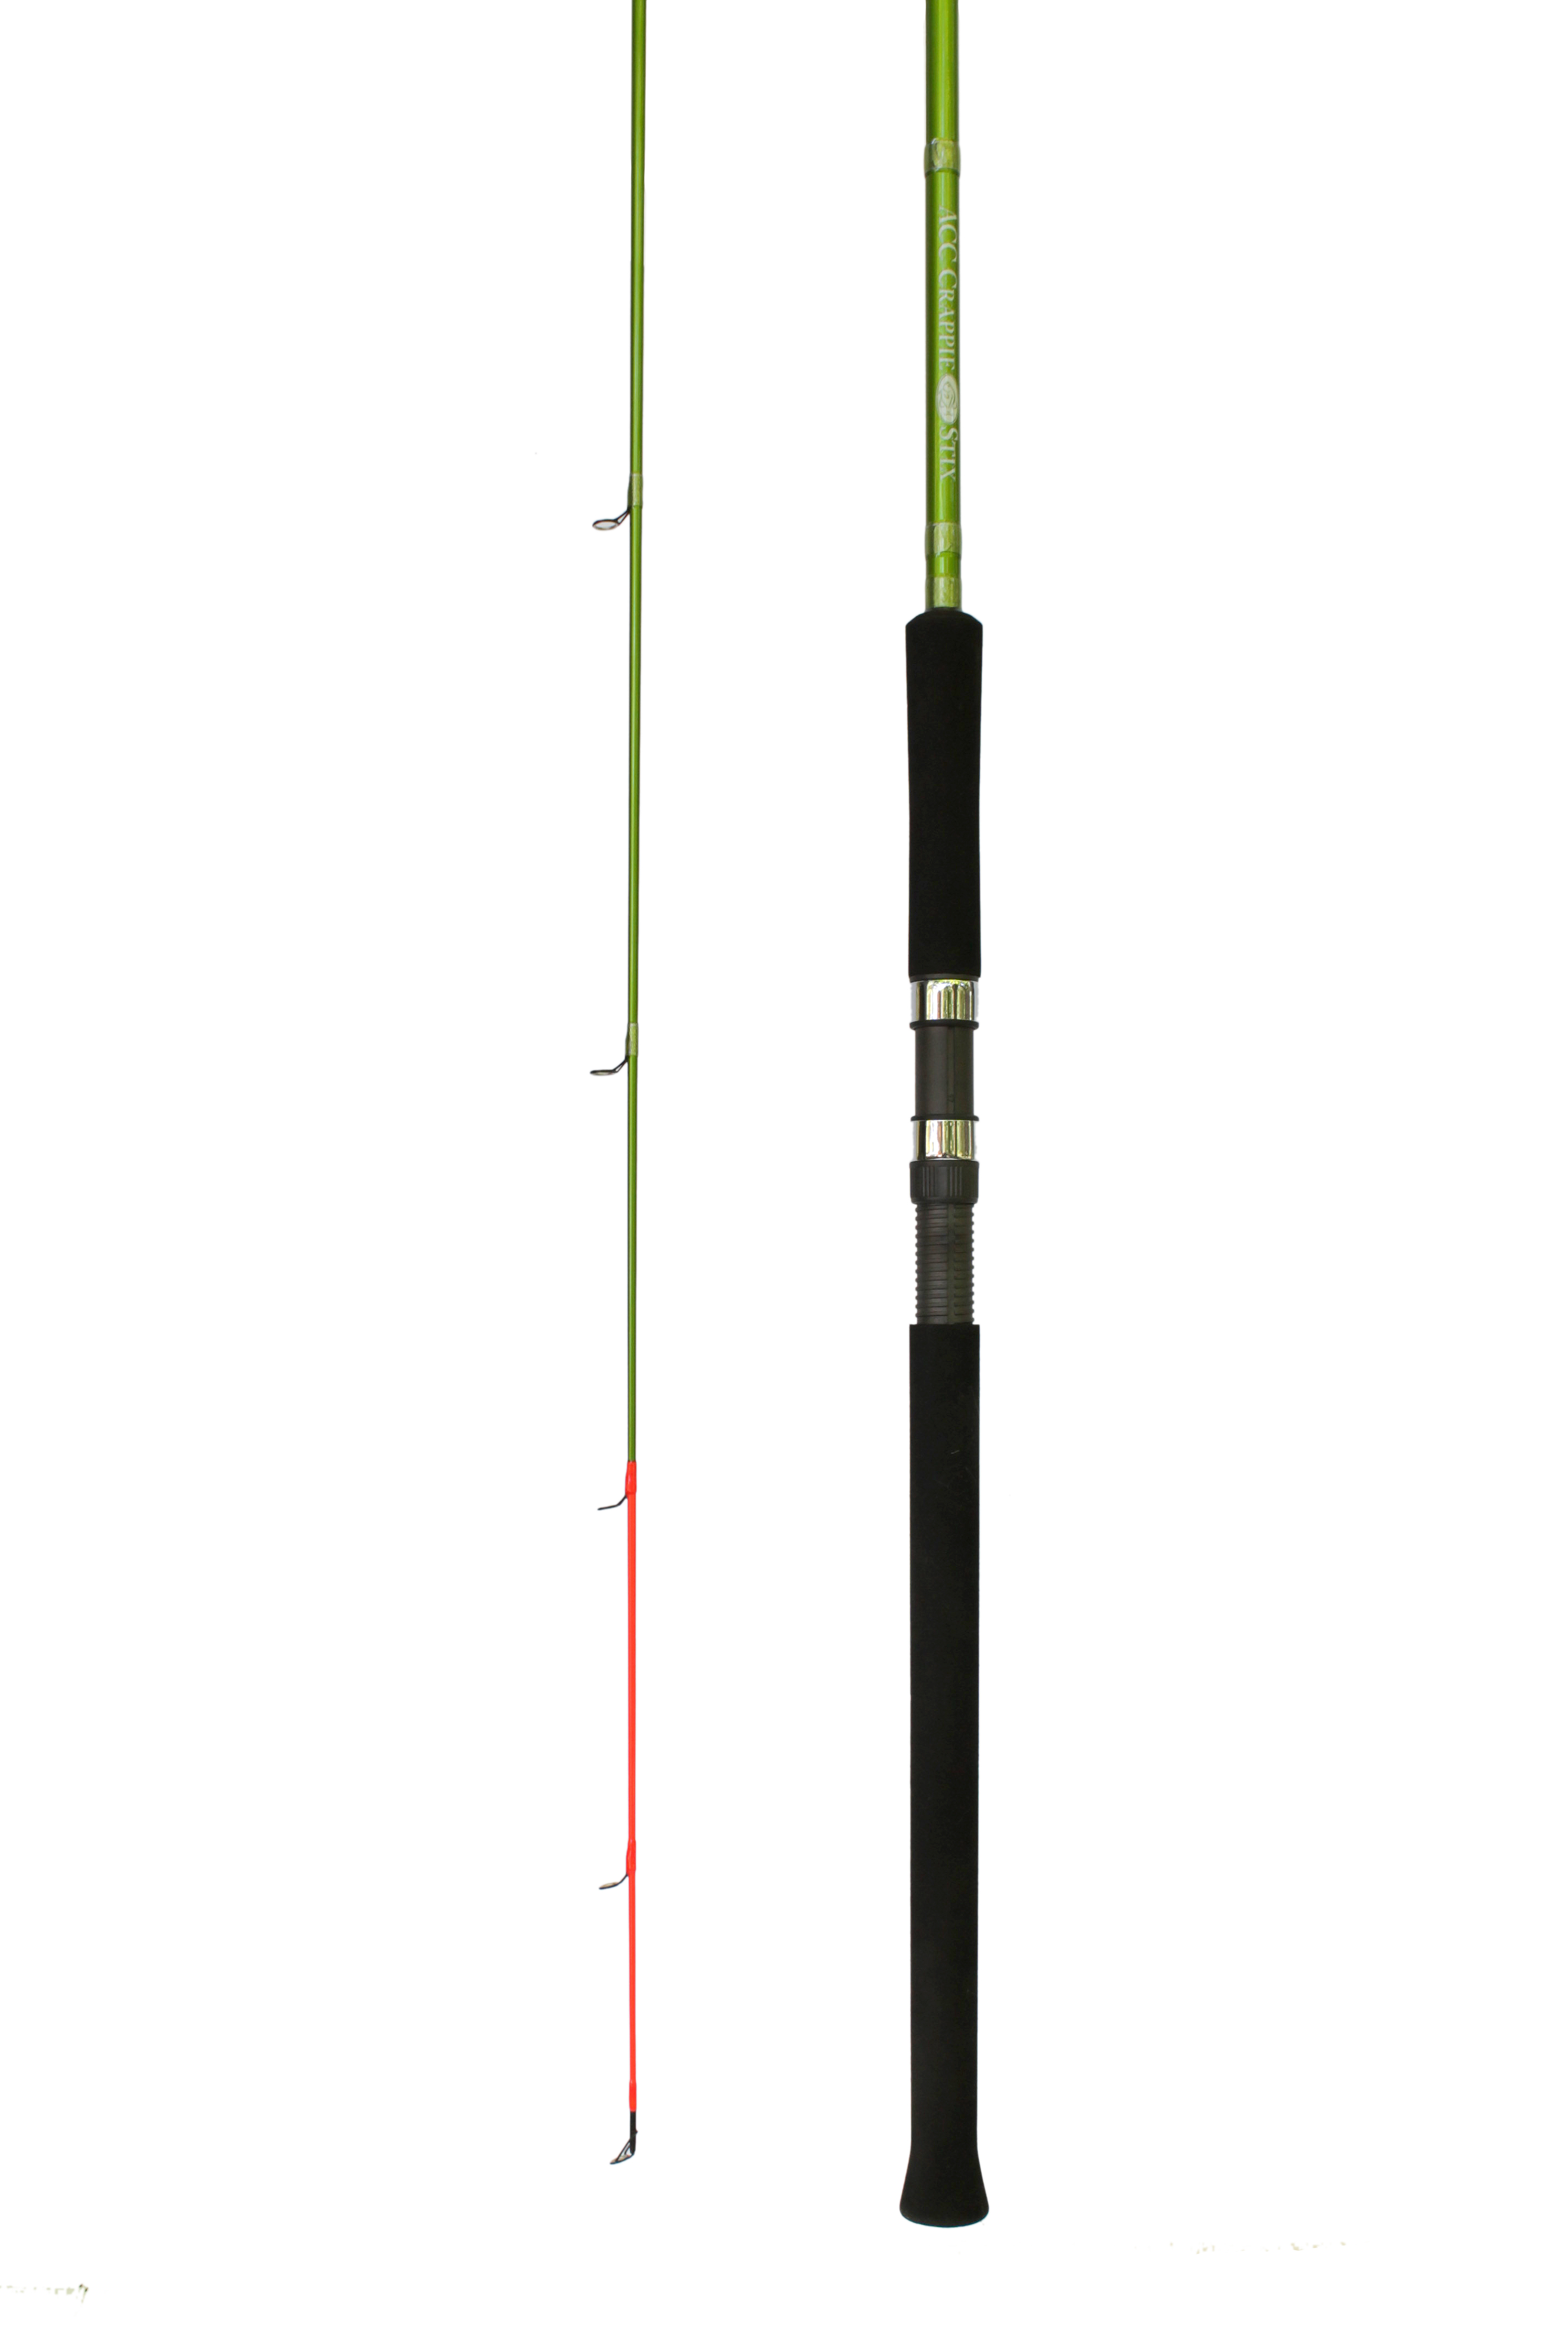 Crappie Pole Holders For Boats   Wiring Diagram Database